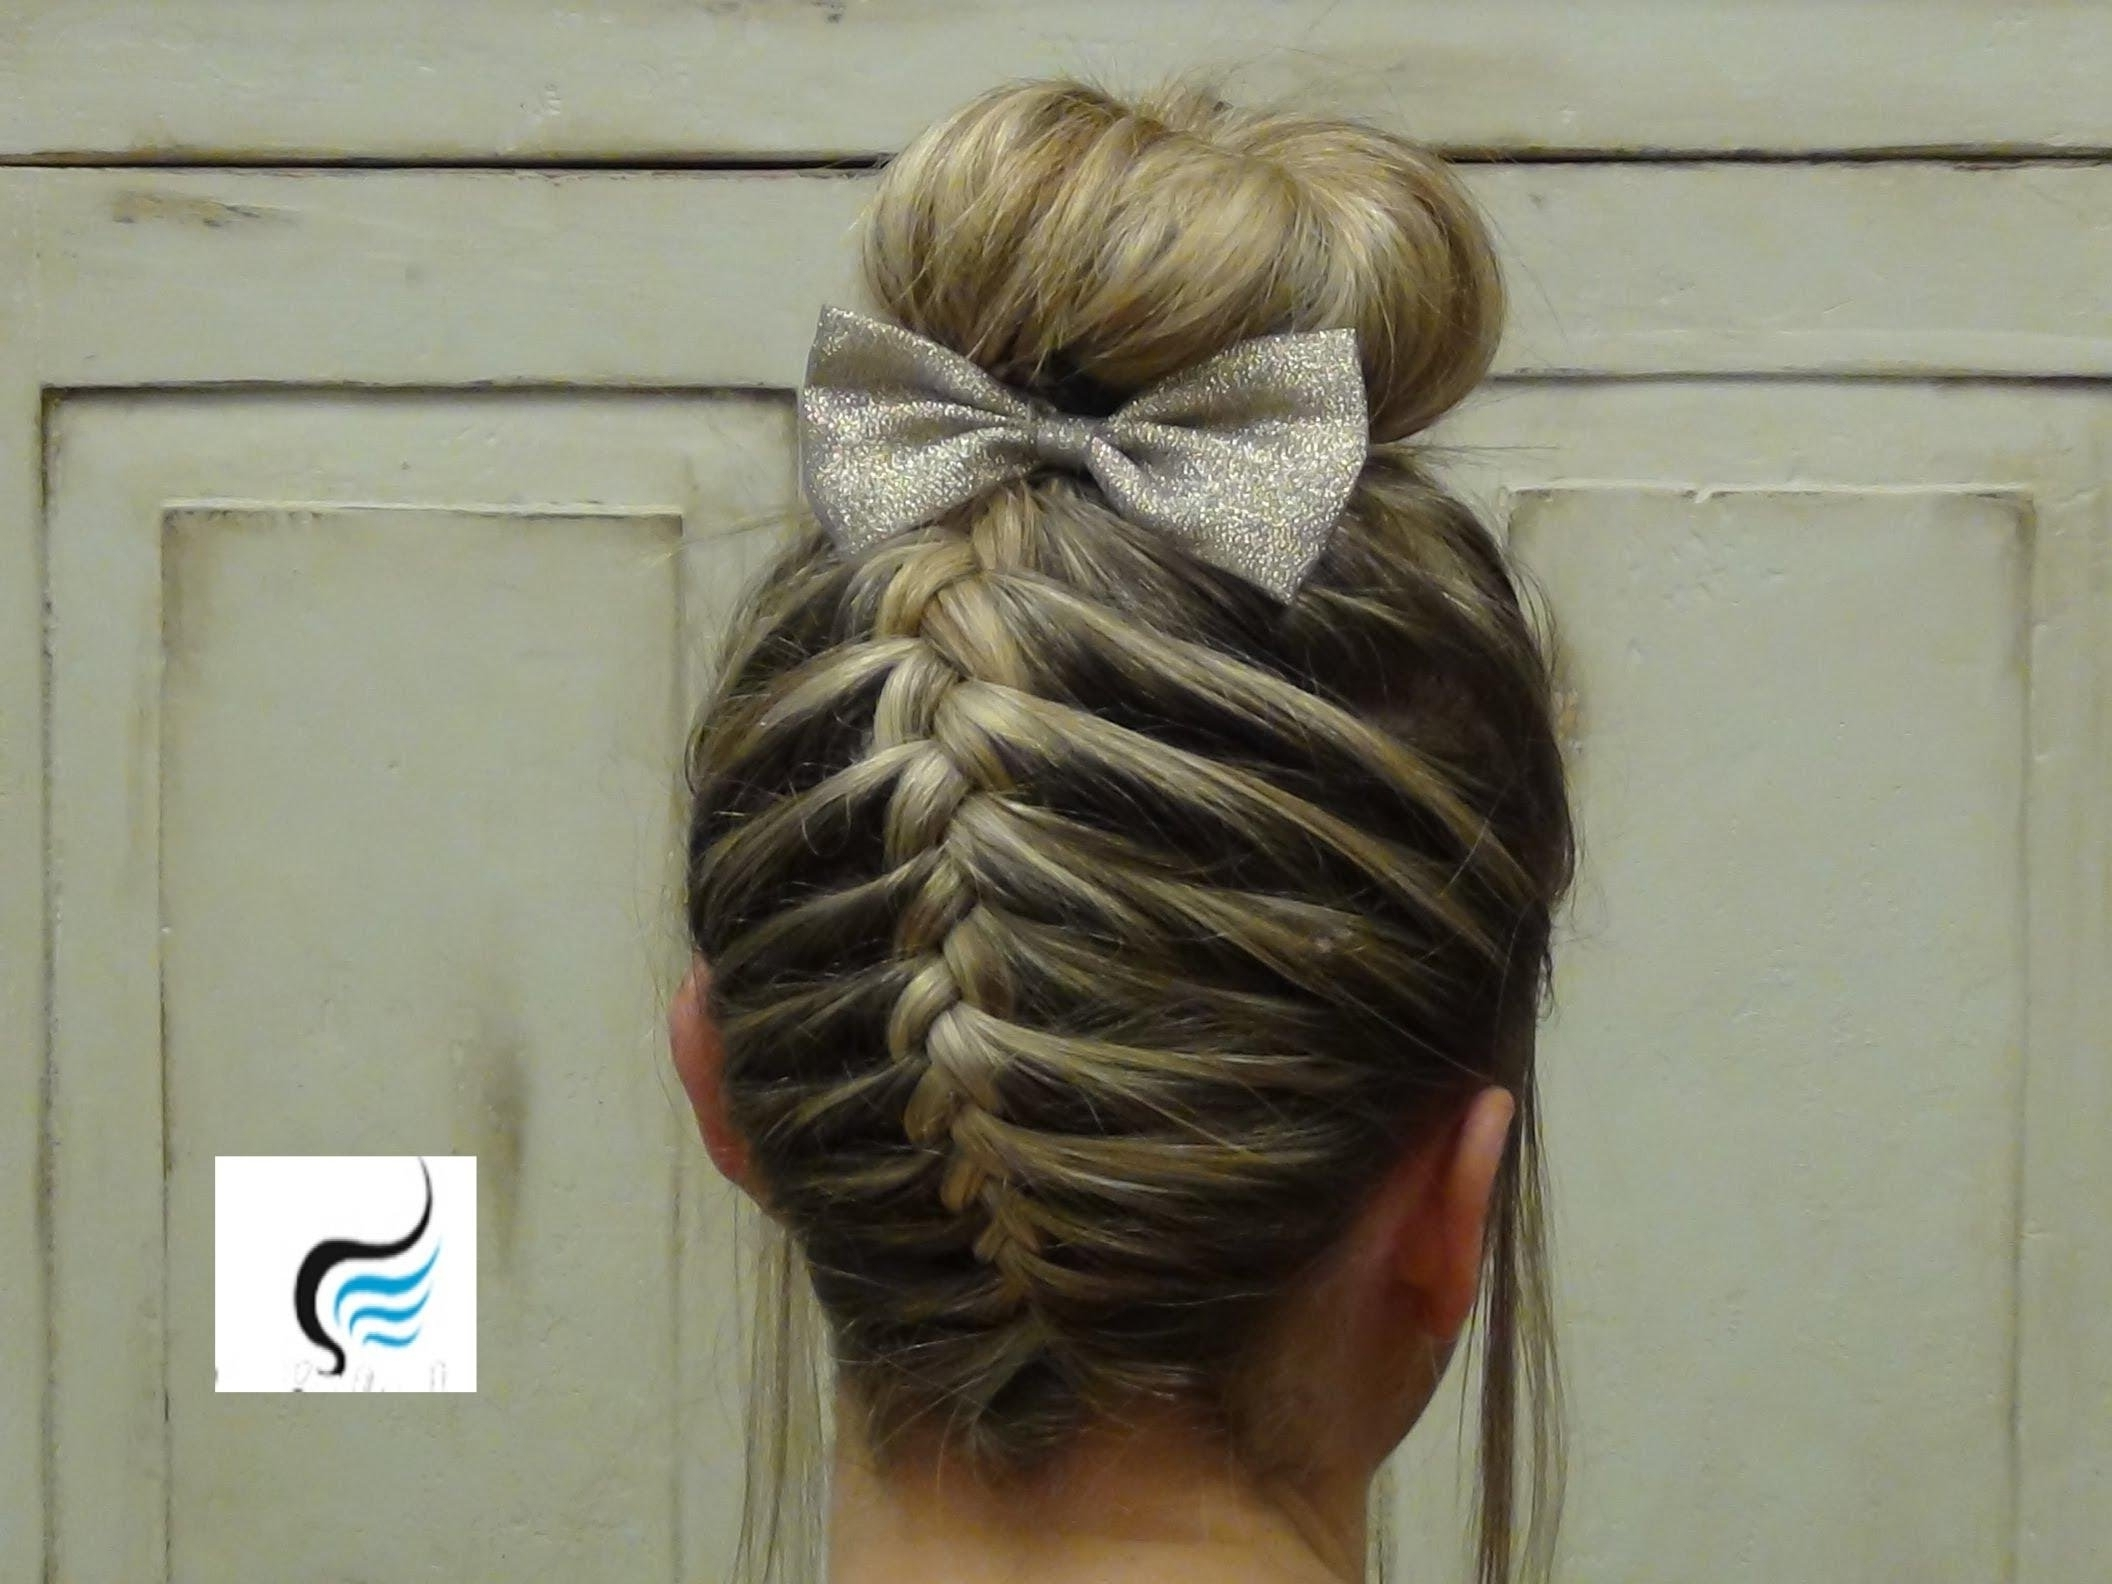 Hairstyles For White Girls Modern Of Braids For White Women's Hair Within Most Recent Braided Hairstyles For White Girl (View 4 of 15)